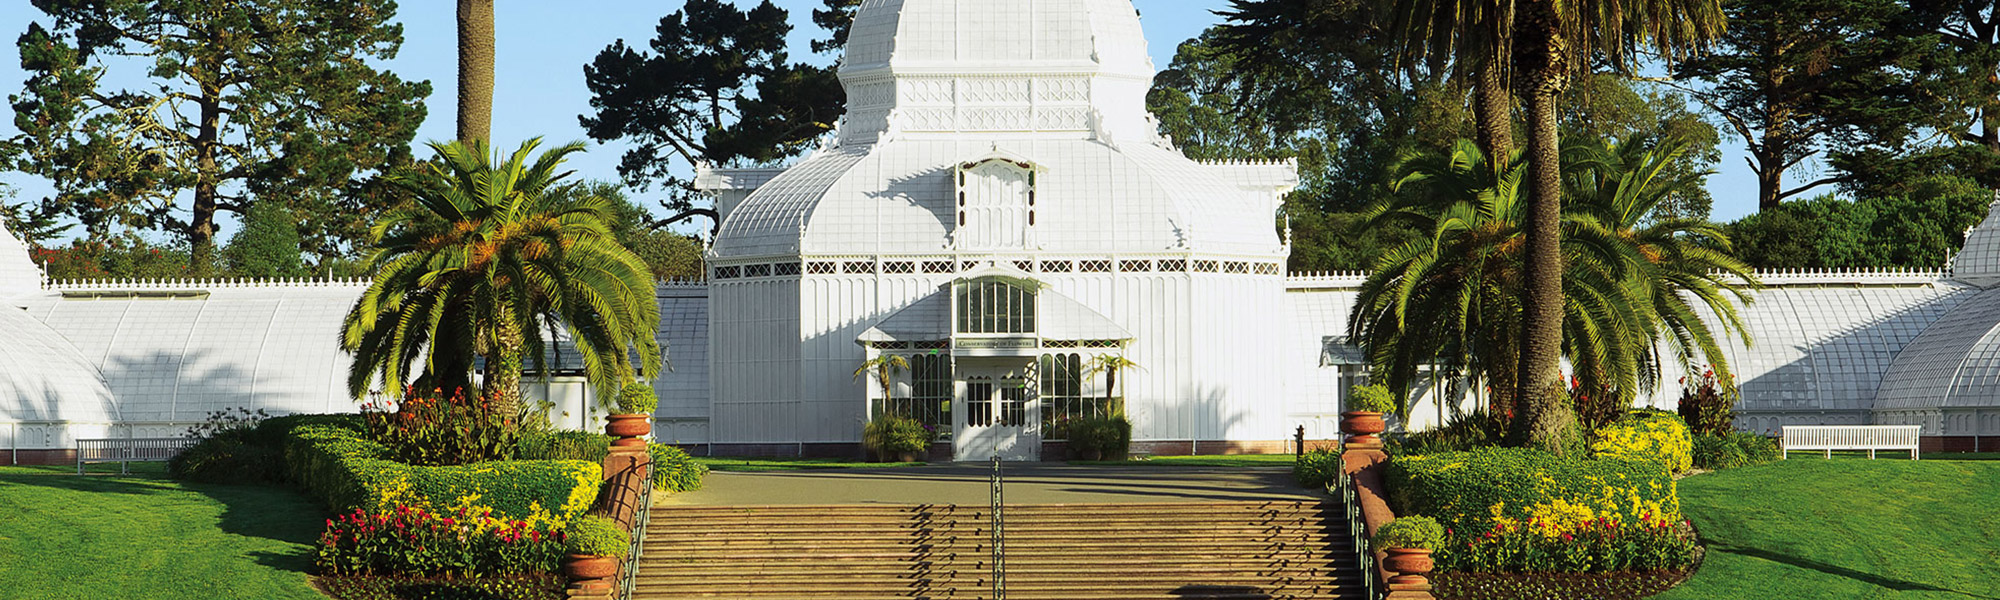 Golden Gate Park at San Francisco